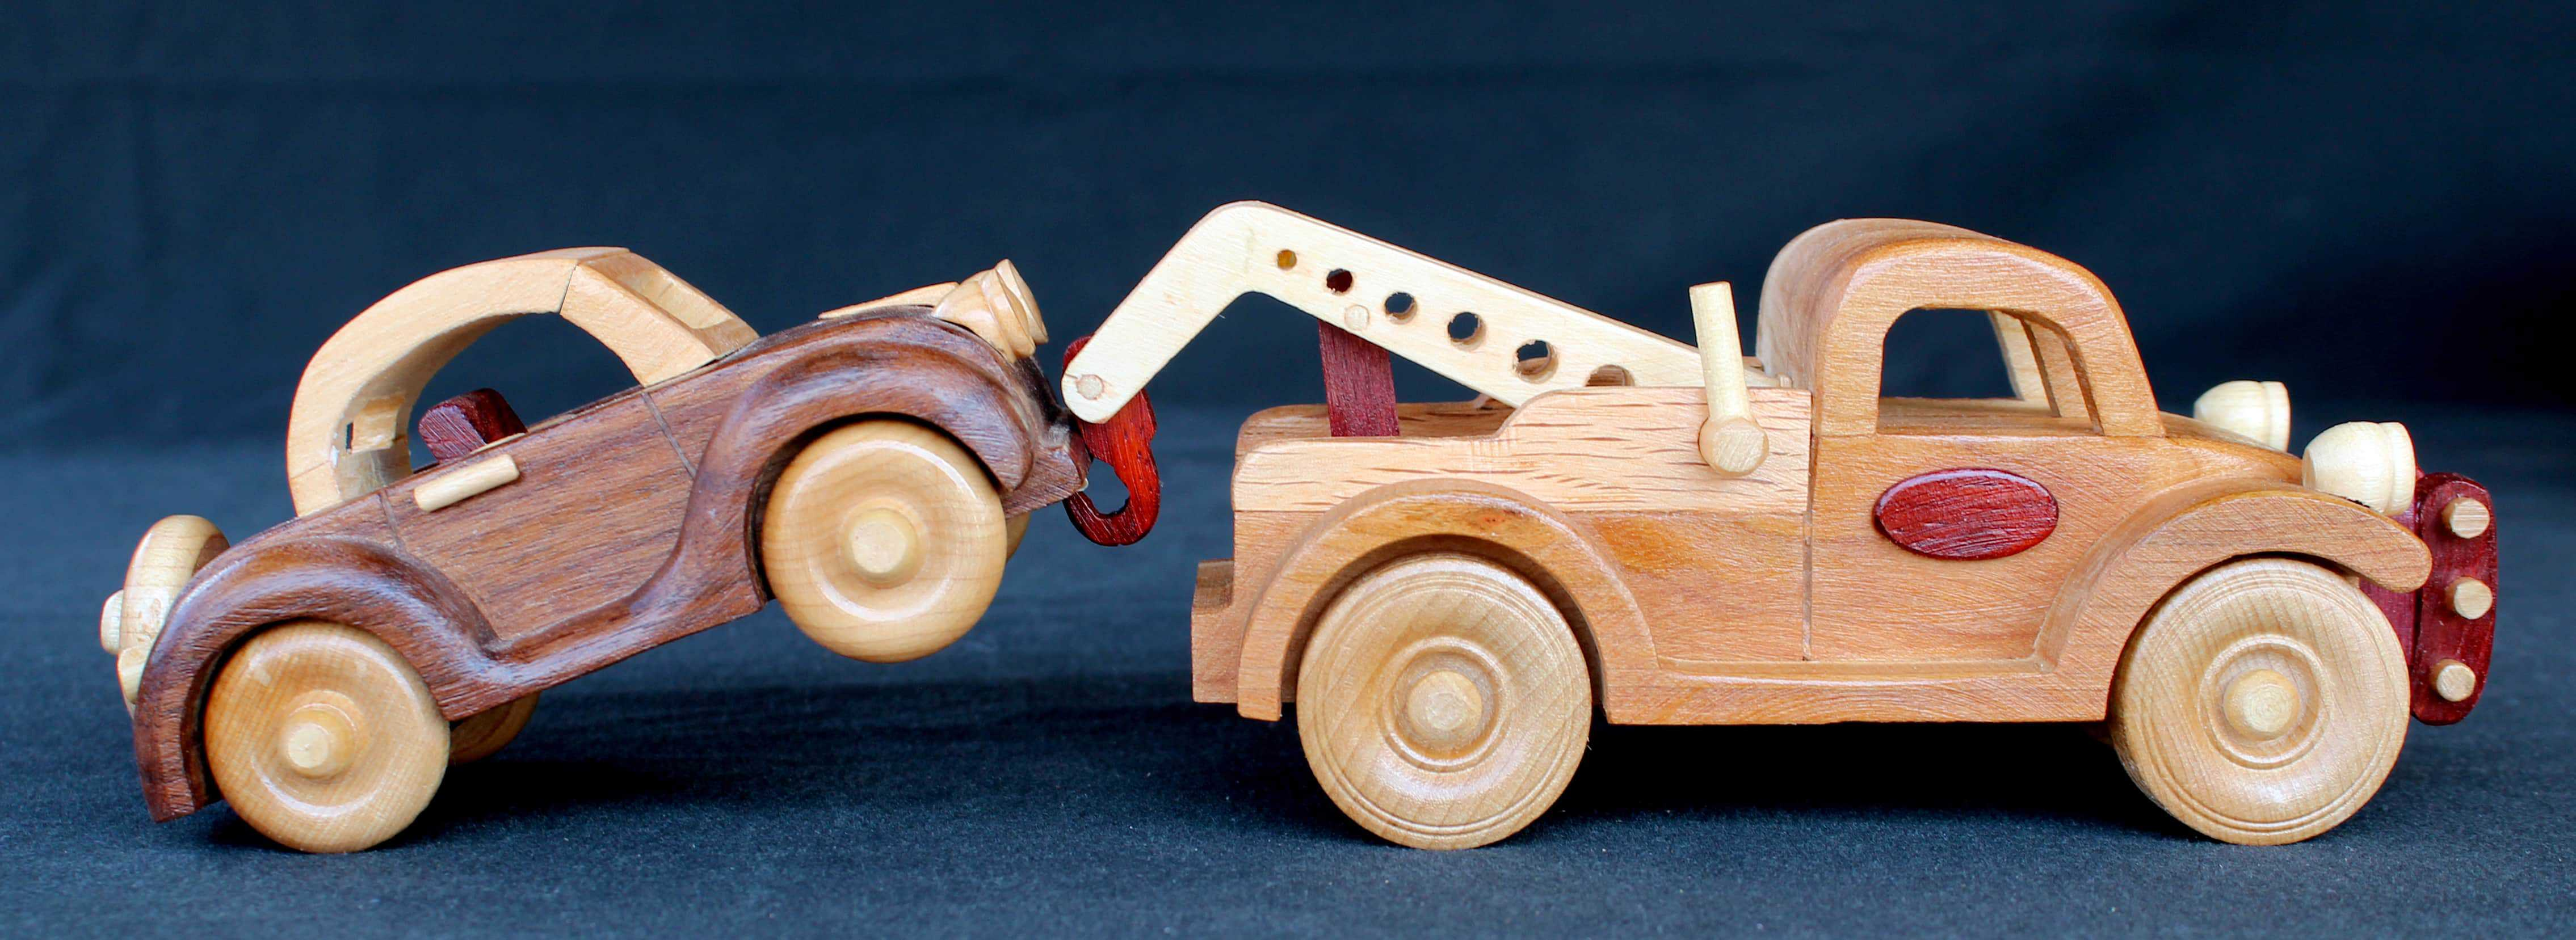 Part of a large wood plan set of vehicles woodworking plan